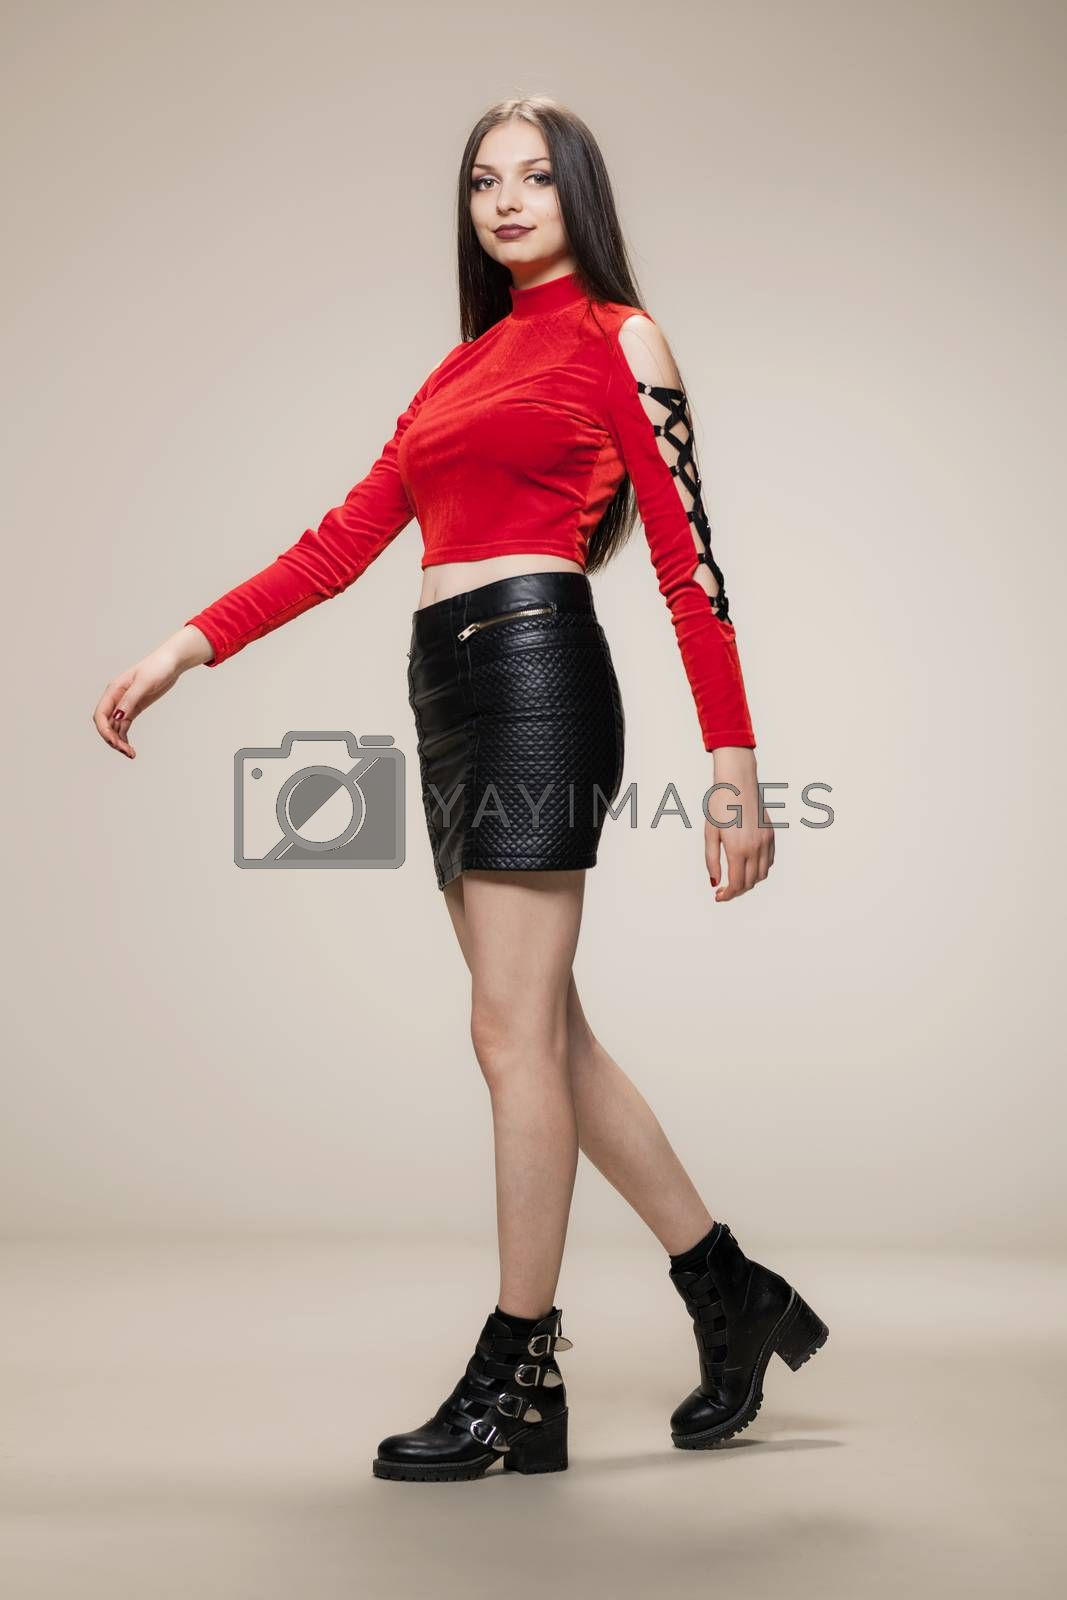 girl in red shirt, short black dress and boots, walking